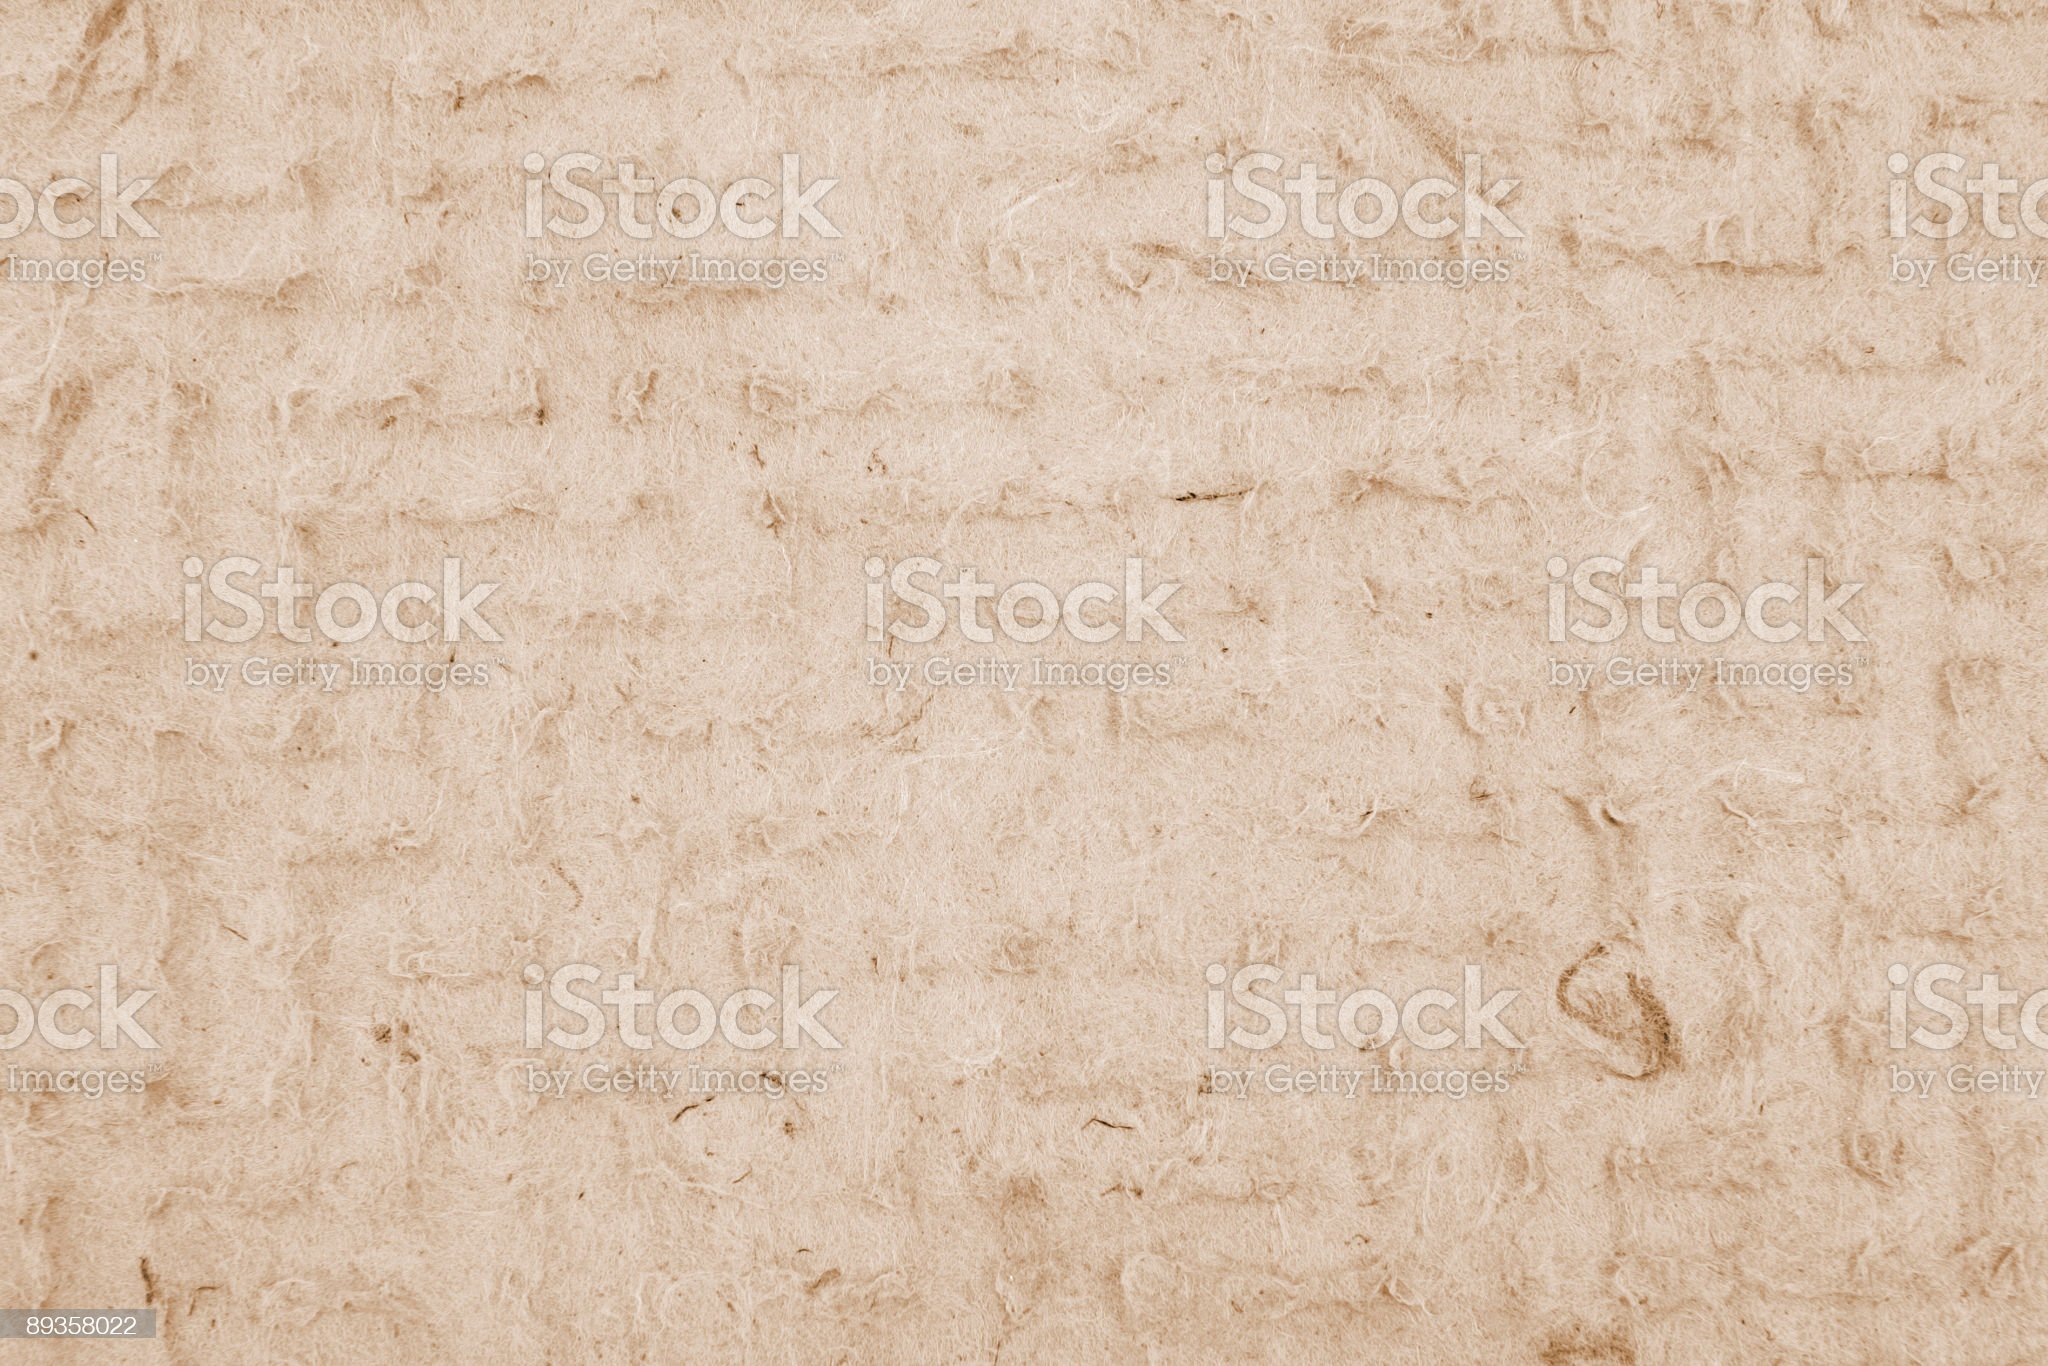 textured tan background royalty-free stock photo